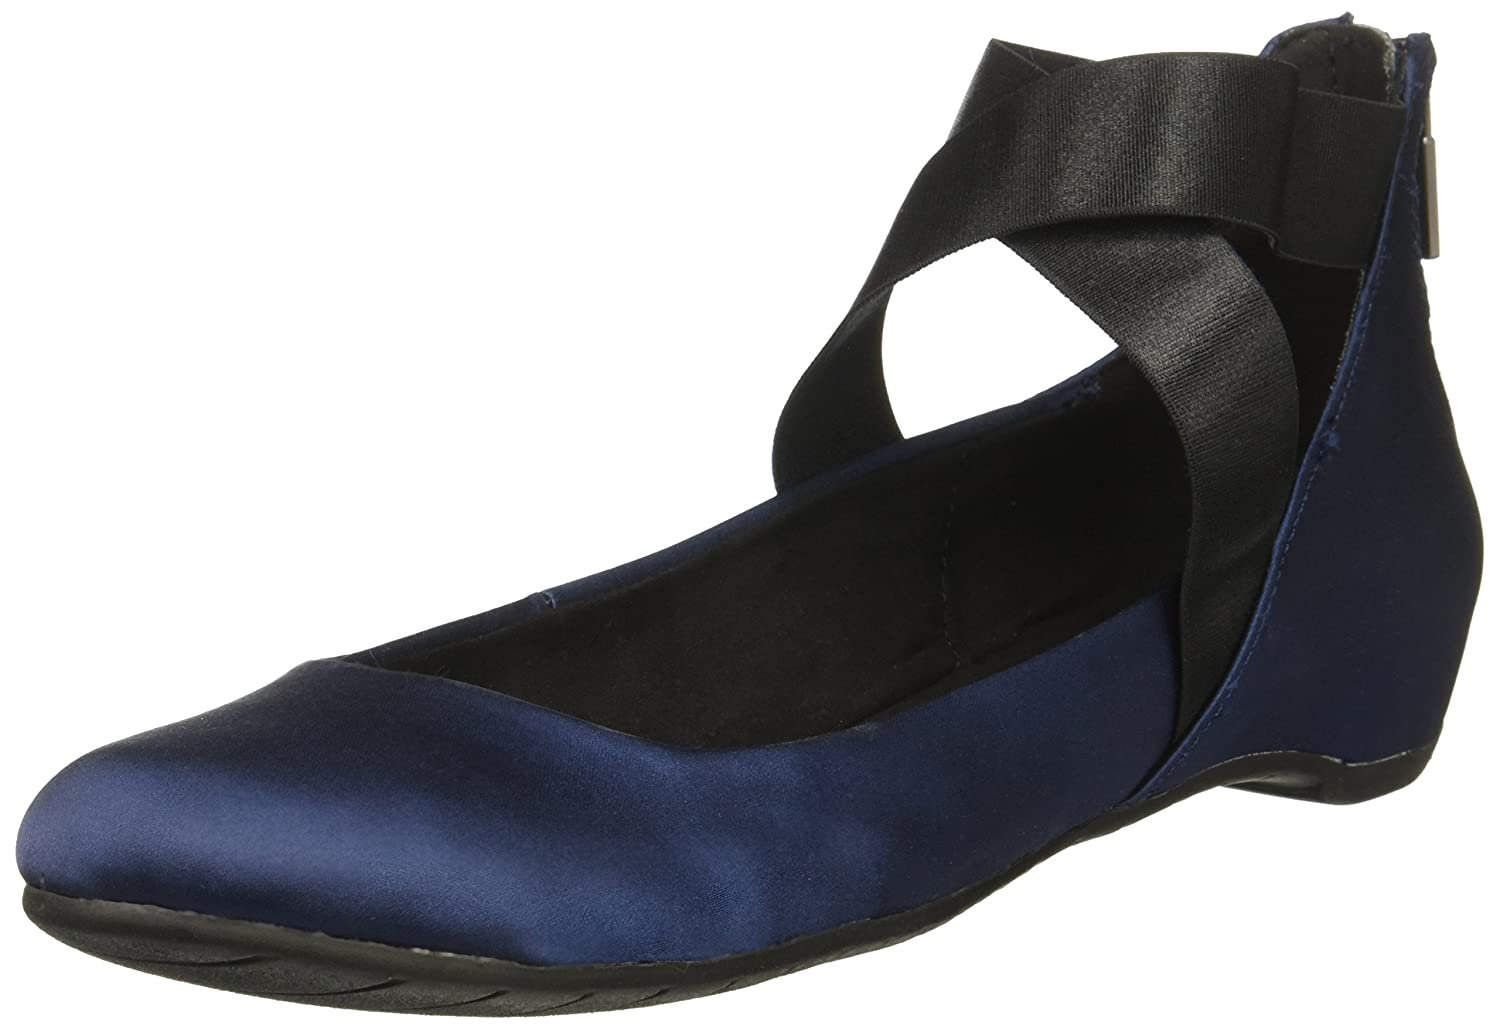 Kenneth Cole REACTION Women's Pro-Time Elastic Ankle Strap, Back Zip-Satin Ballet Flat B06WGS68KF 9 B(M) US|Navy